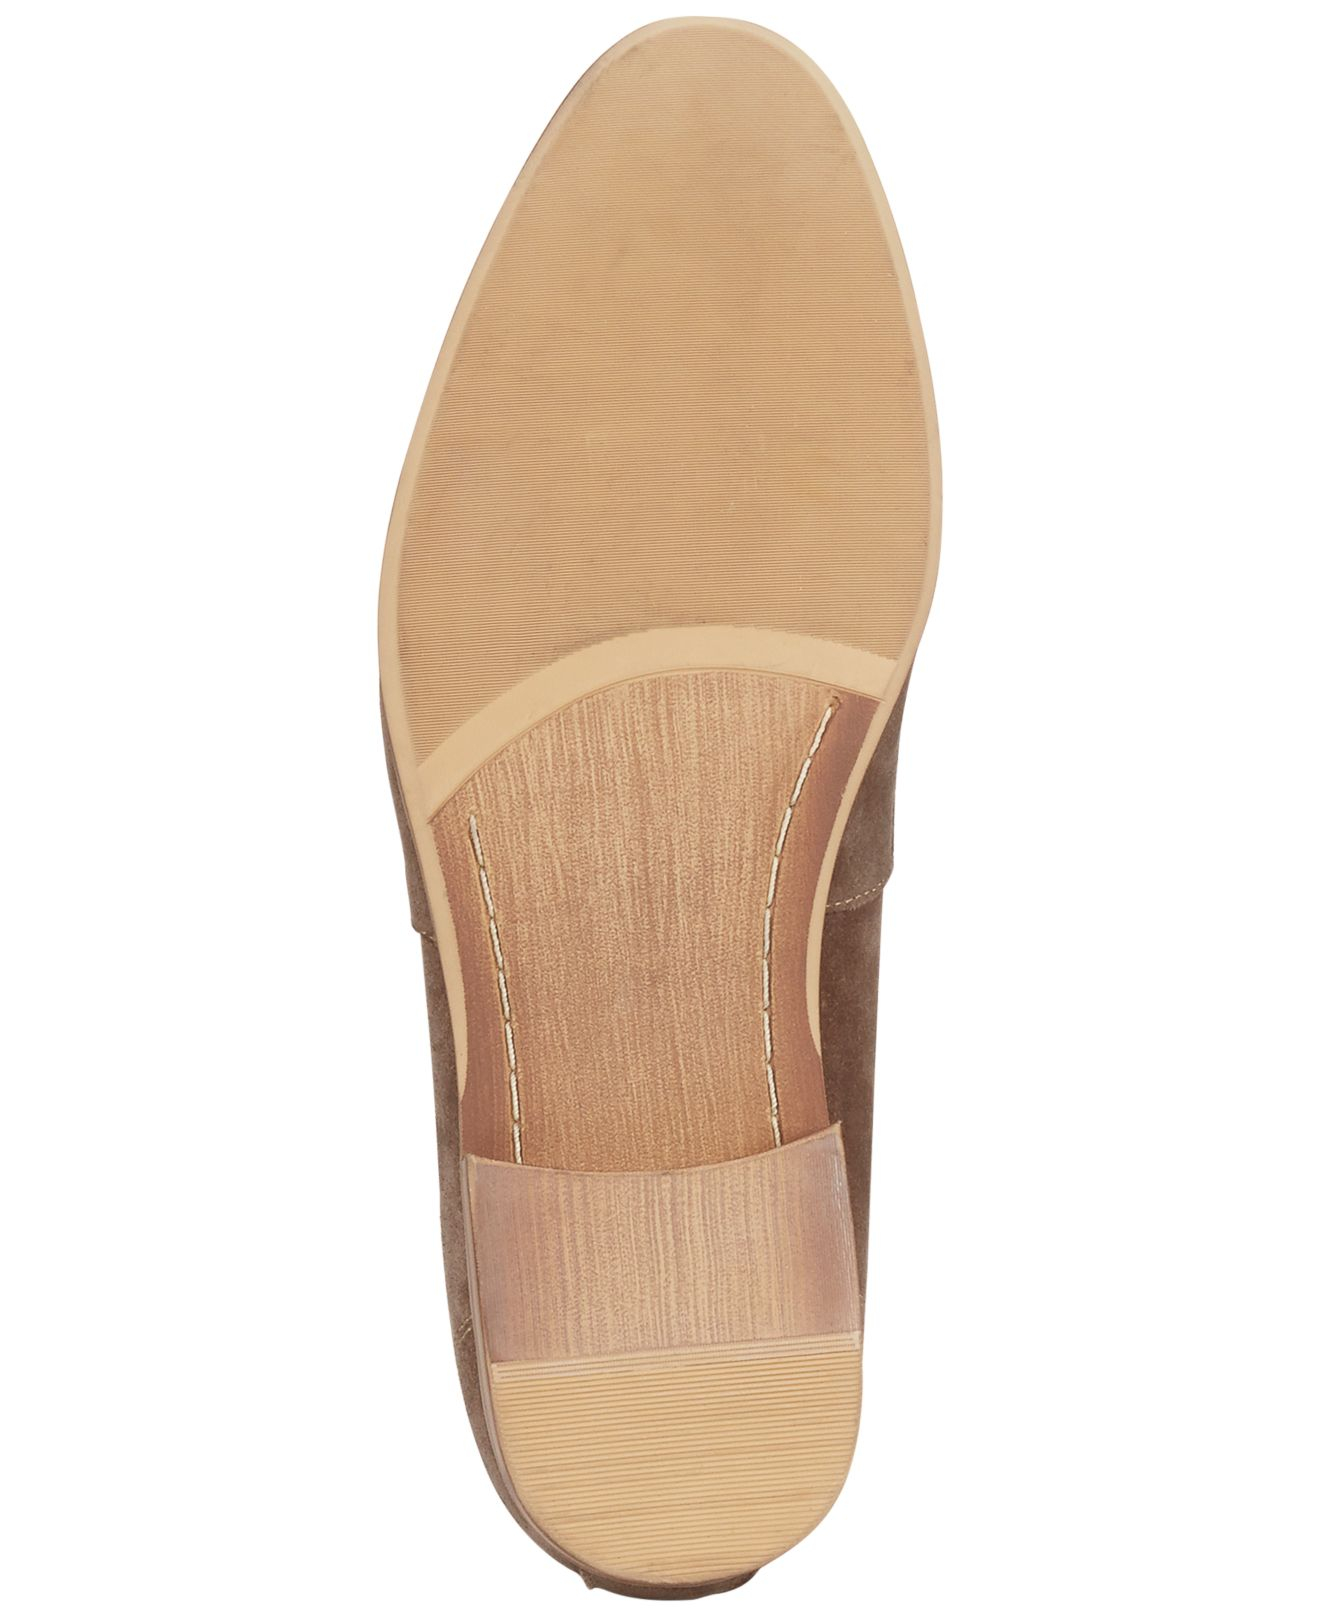 98a6ff57ef4 Lyst - Kenneth Cole Reaction Getting Tipsy Penny Loafers in Natural ...